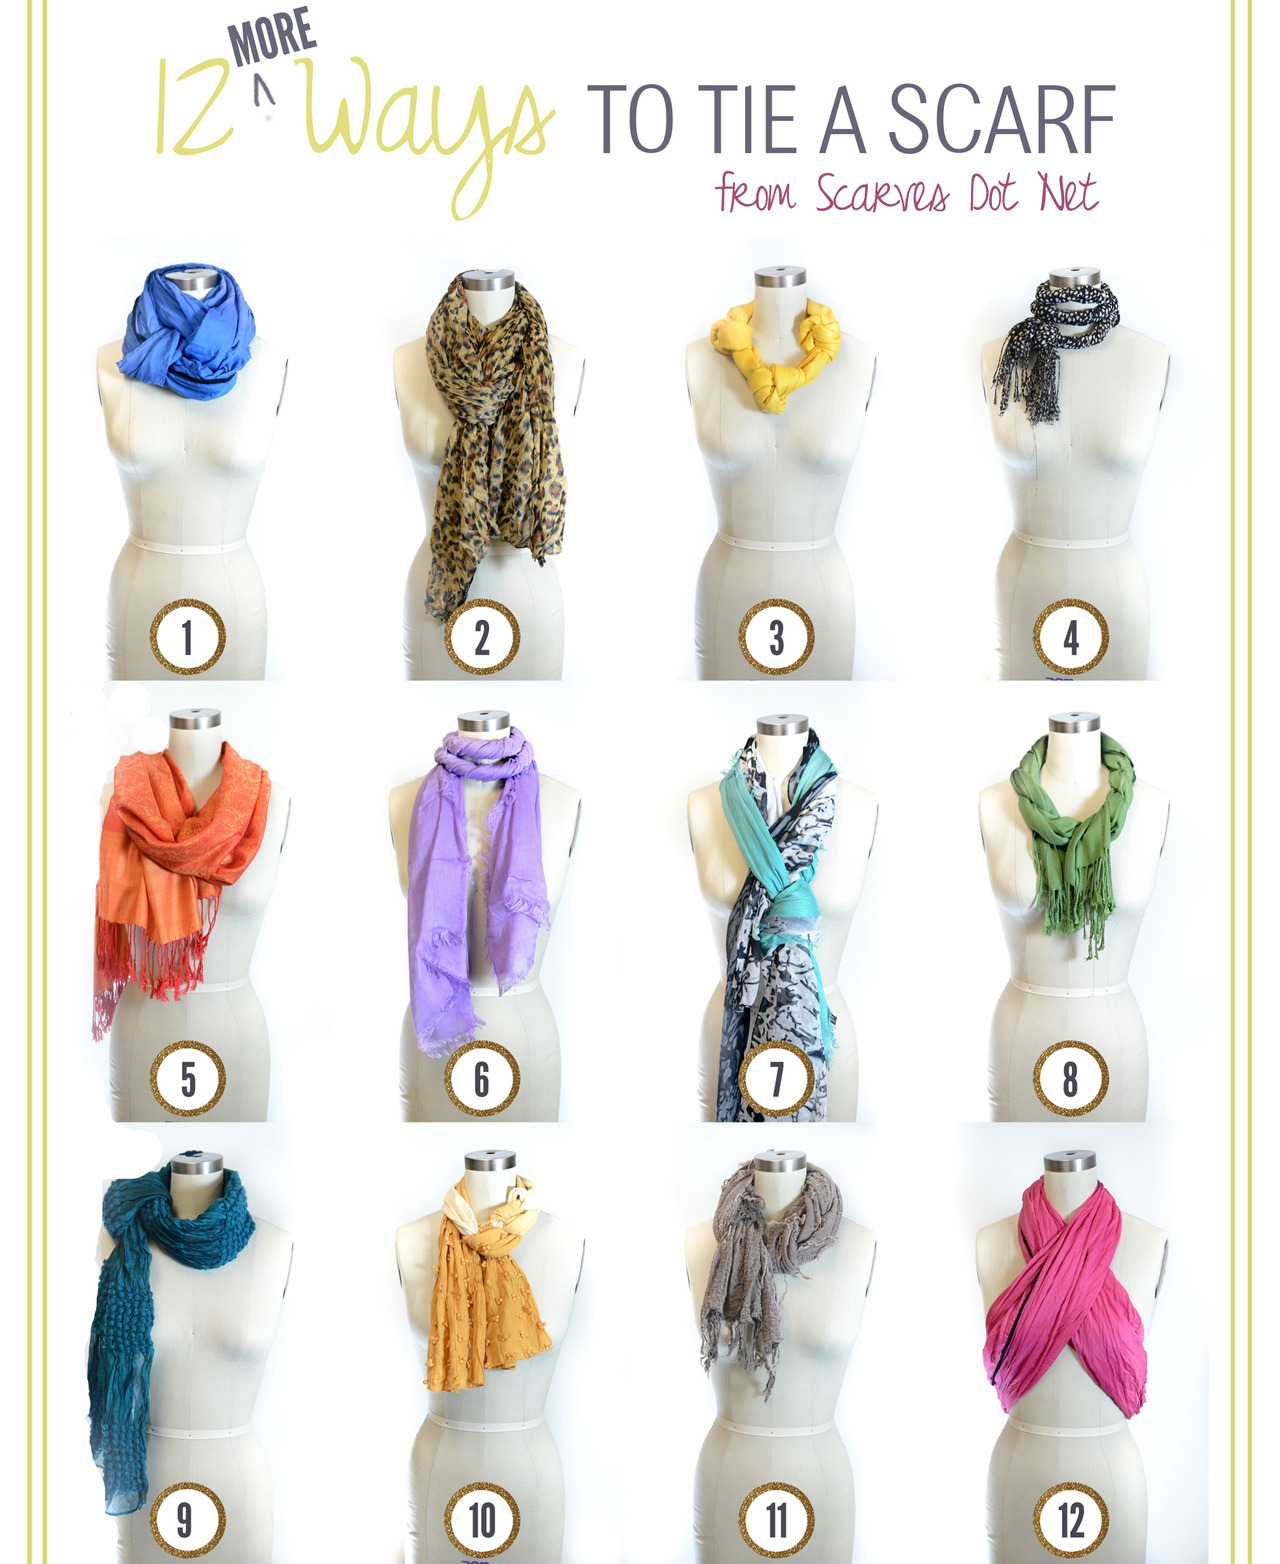 truebluemeandyou:  DIY Twelve More Ways to Tie a Scarf here from scarves.net here. For more ideas on DIYing scarves, scarf storage and altering scarves go here: http://truebluemeandyou.tumblr.com/tagged/scarf